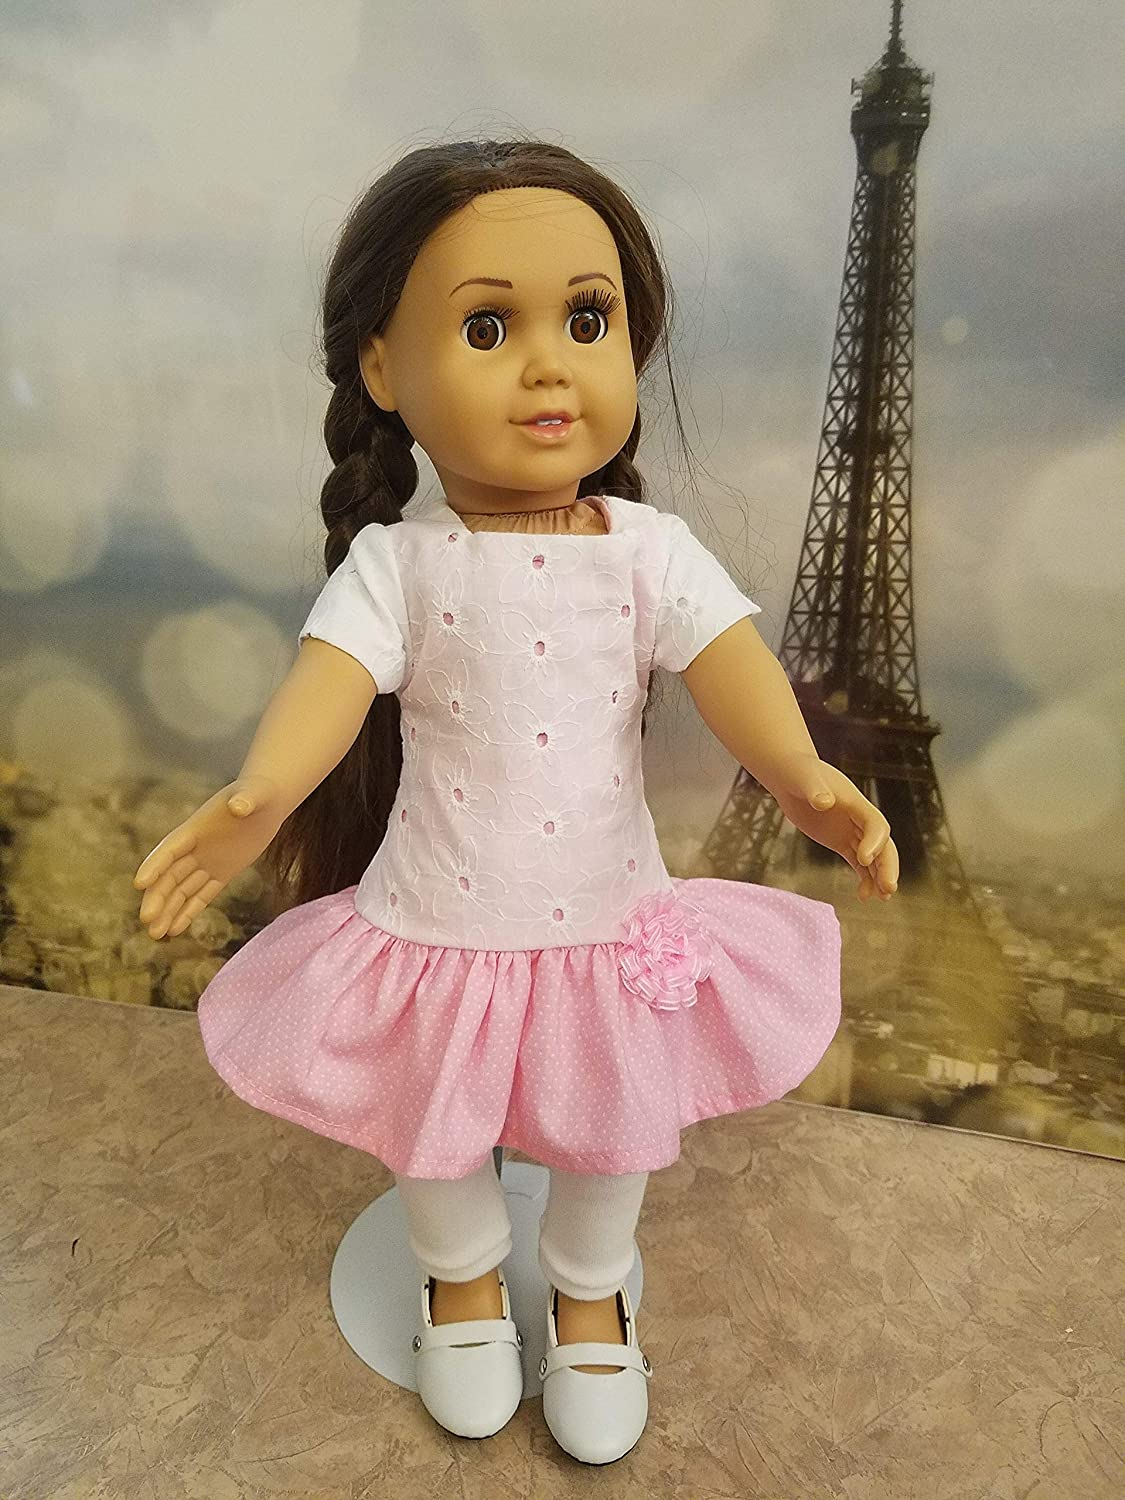 pink and white play dress up outfit American girl doll